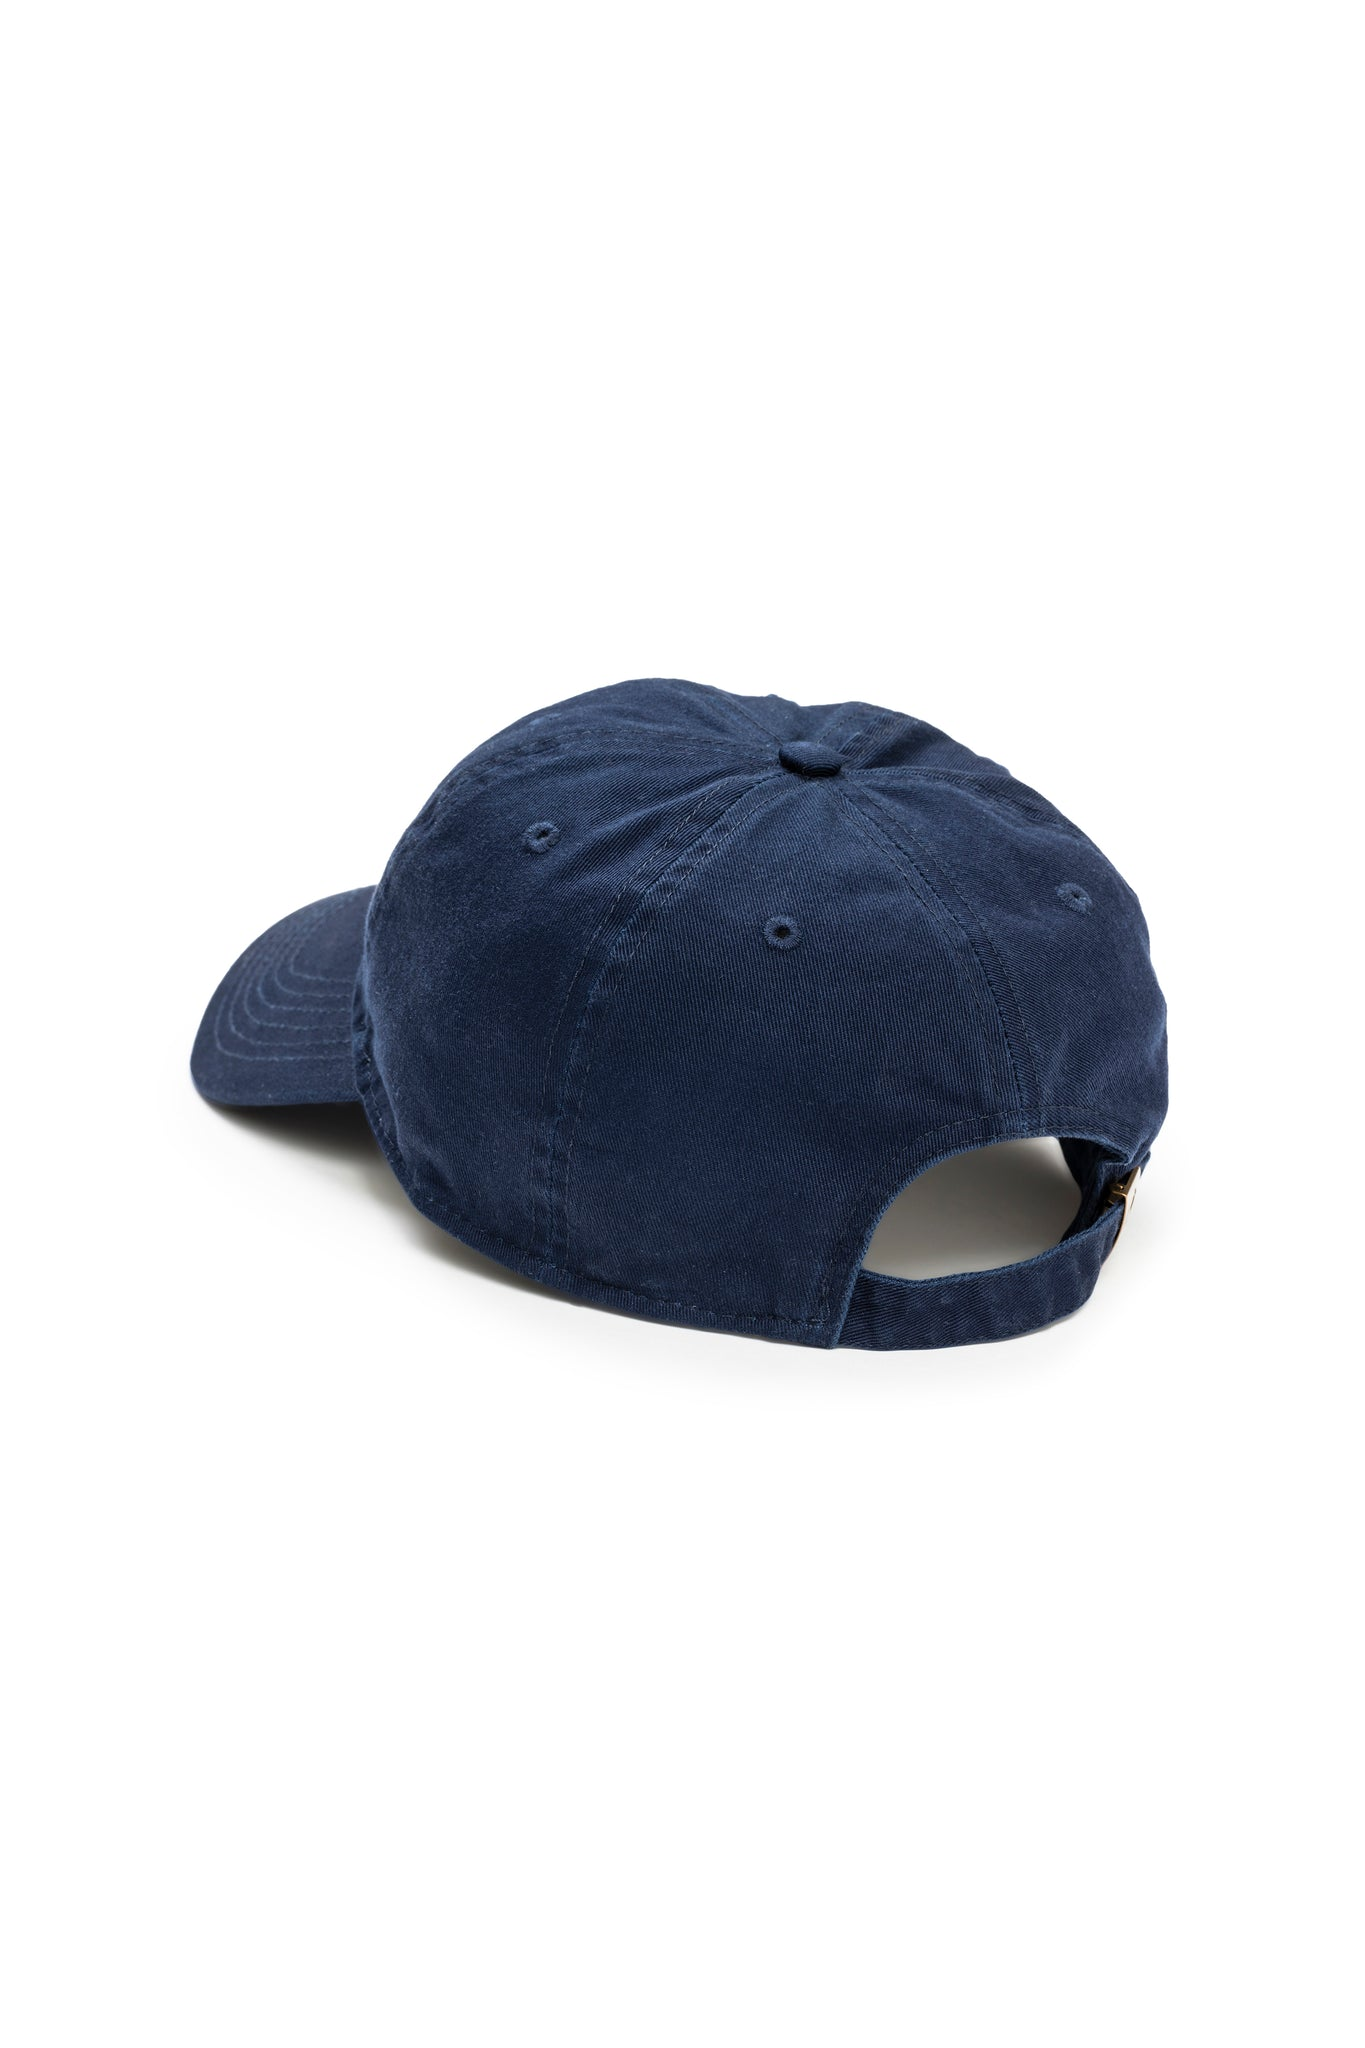 Royal Navy Shortstop Cap with White Polar Bear